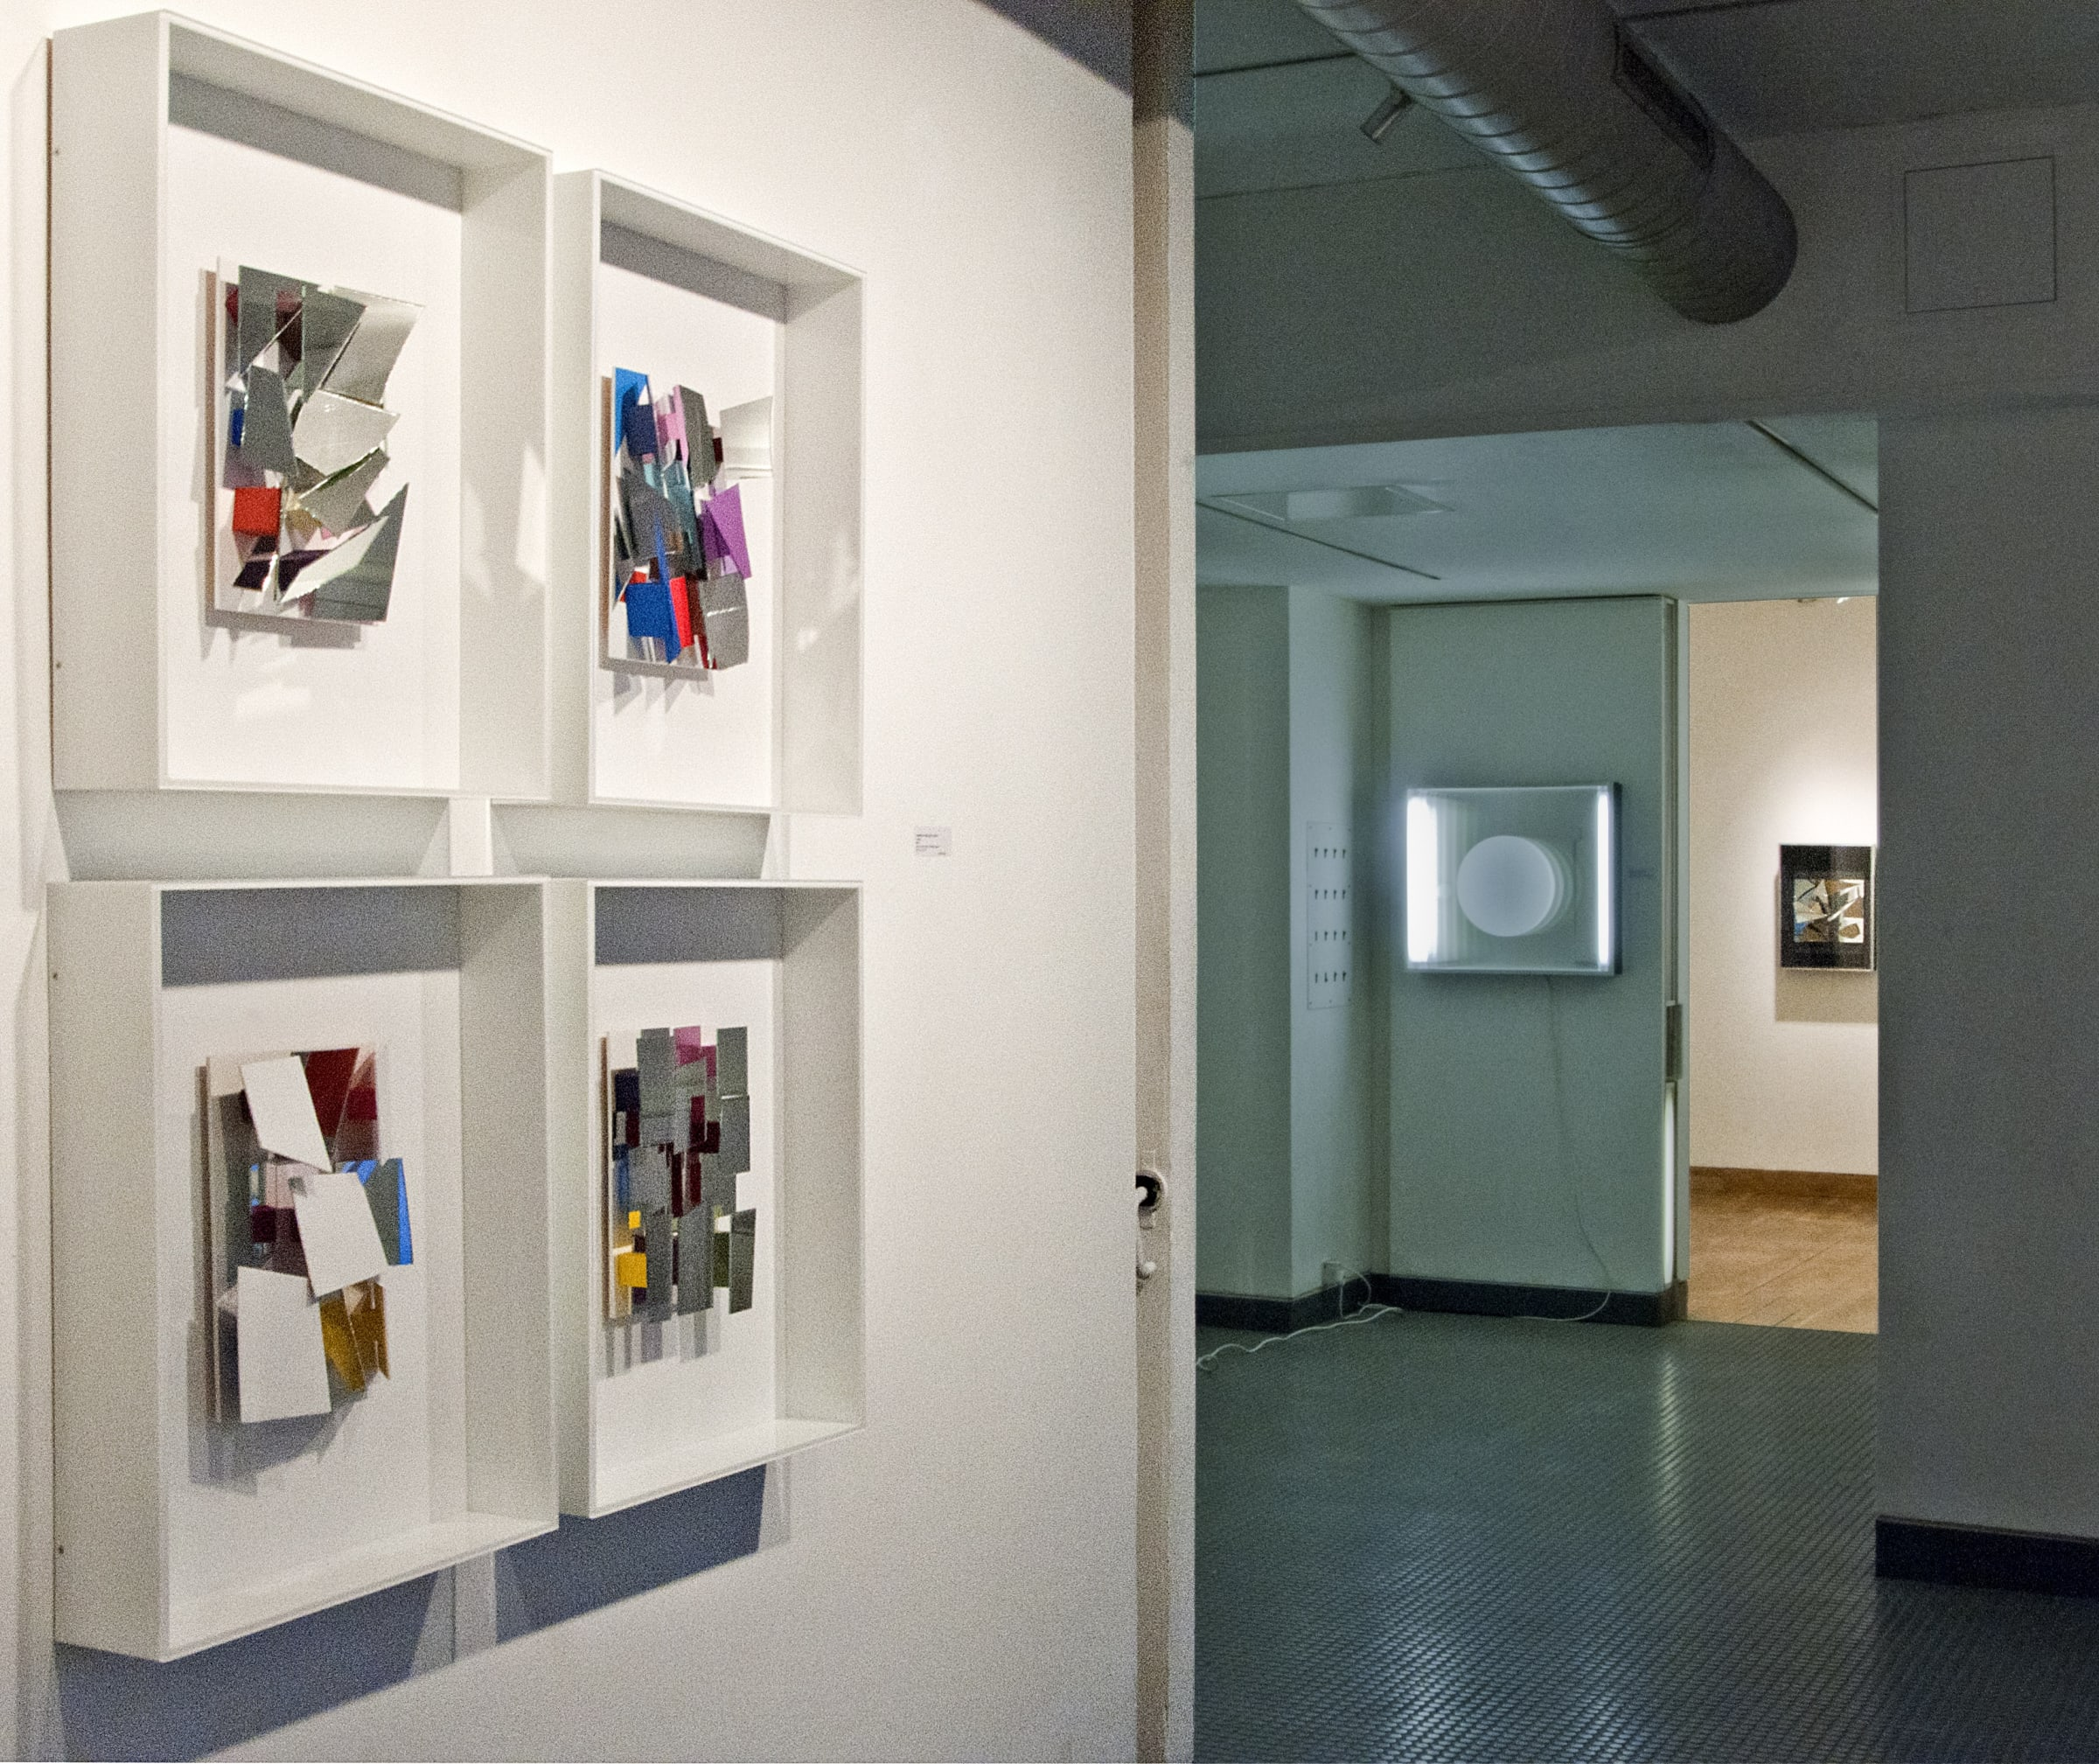 """<span class=""""link fancybox-details-link""""><a href=""""/exhibitions/75/works/image_standalone231/"""">View Detail Page</a></span><p>CHRISTIAN MEGERT   A NEW SPACE   11 JAN - 24 FEB 2012  Installation View</p>"""